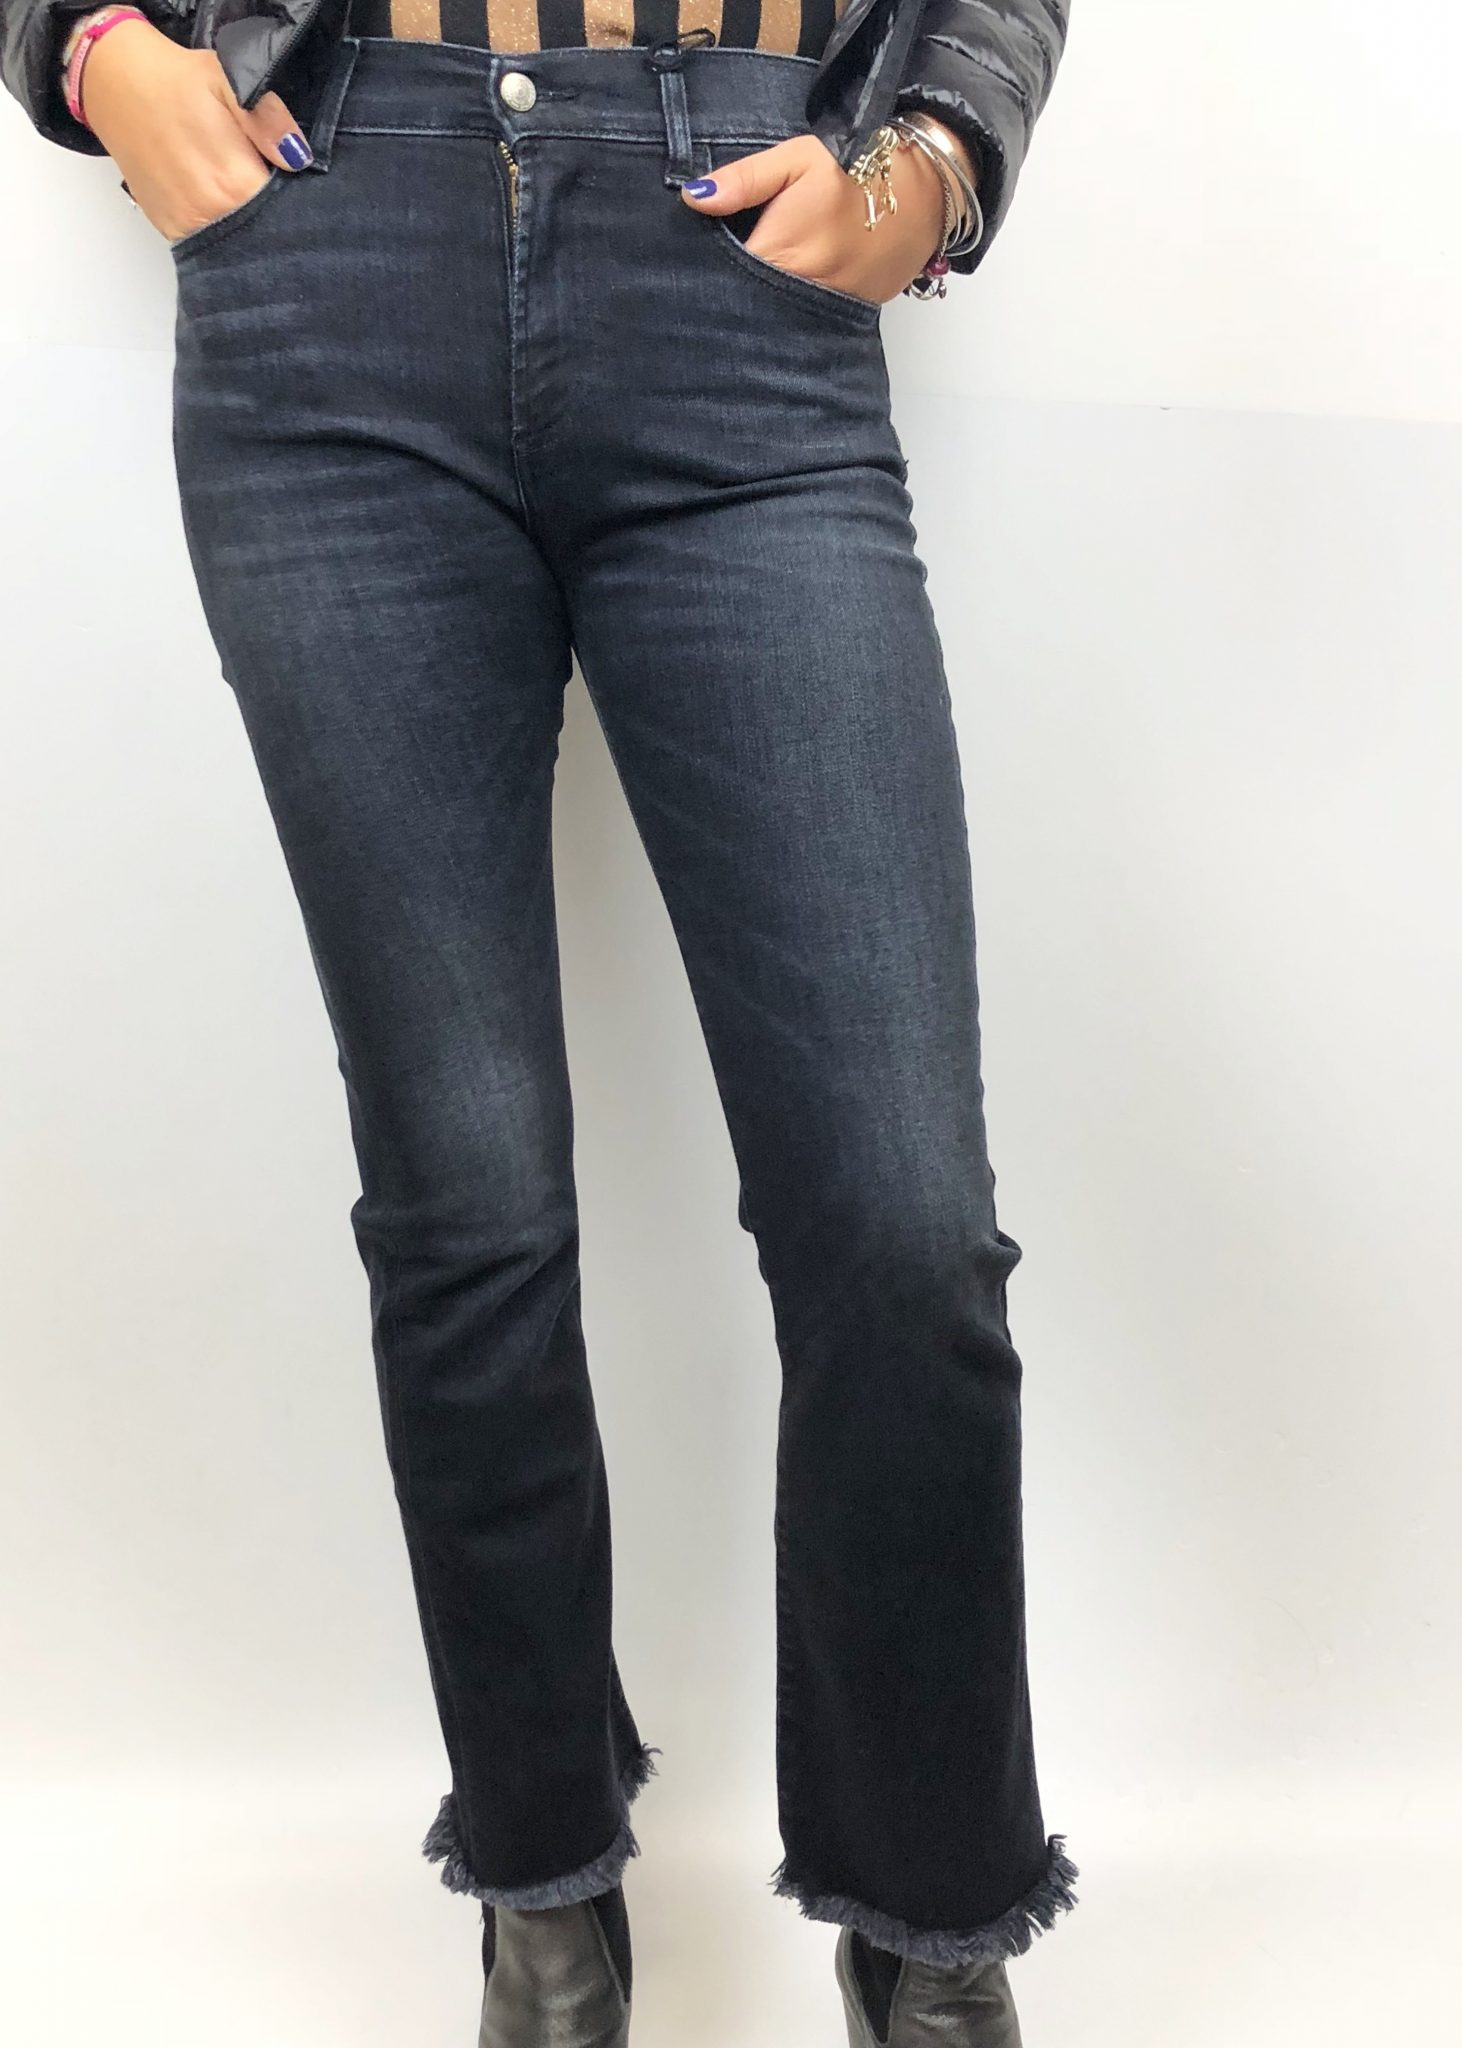 JEANS ROY ROGER S CON ZAMPETTA 4d7702a721a